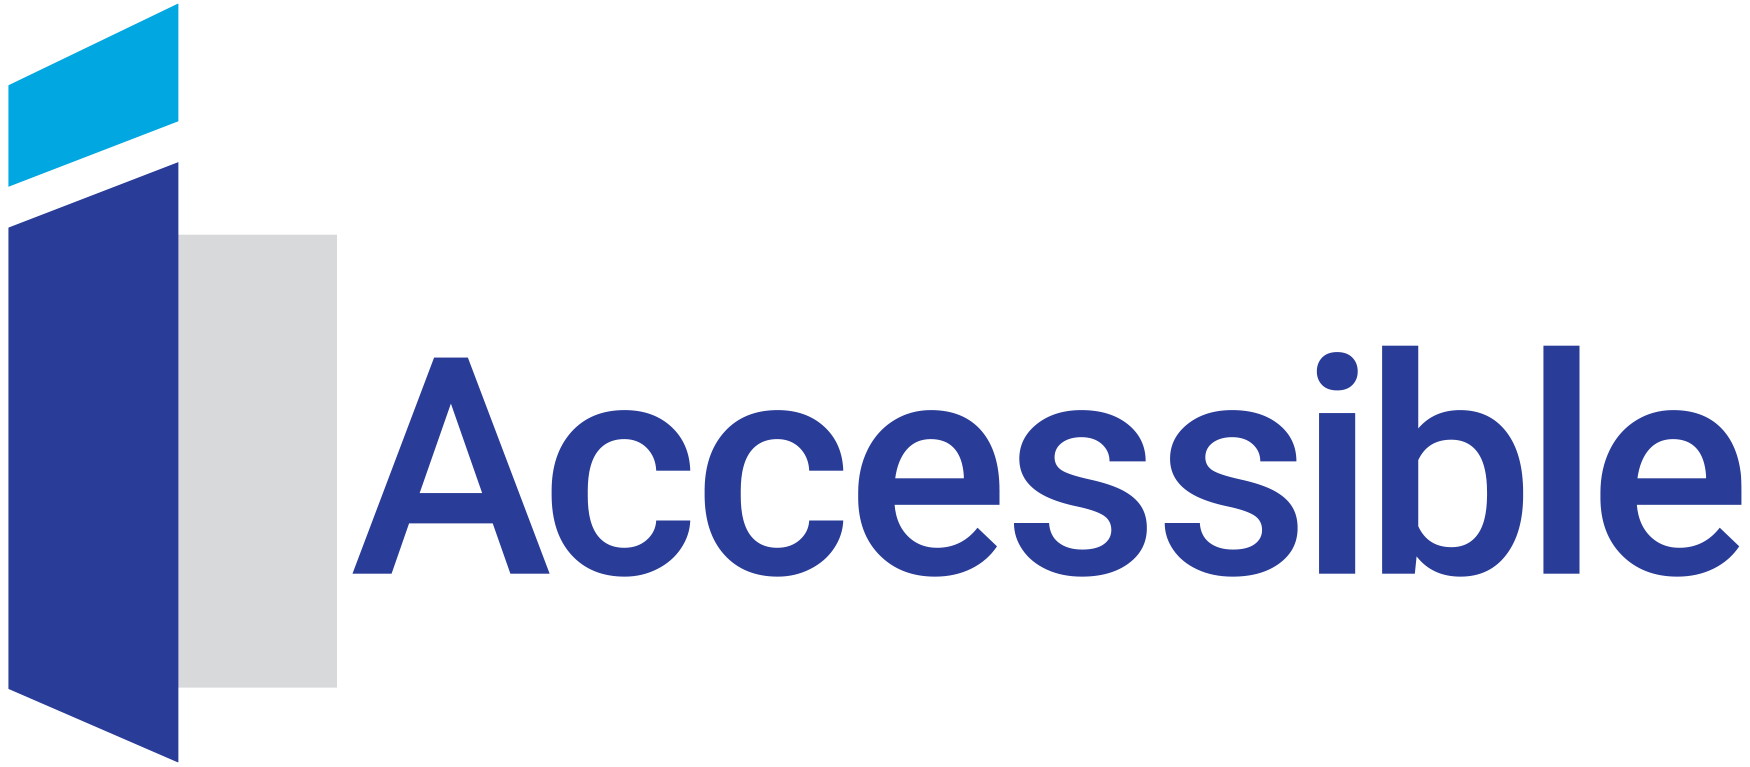 iAccessible Logo: redirects to iAccessible Website